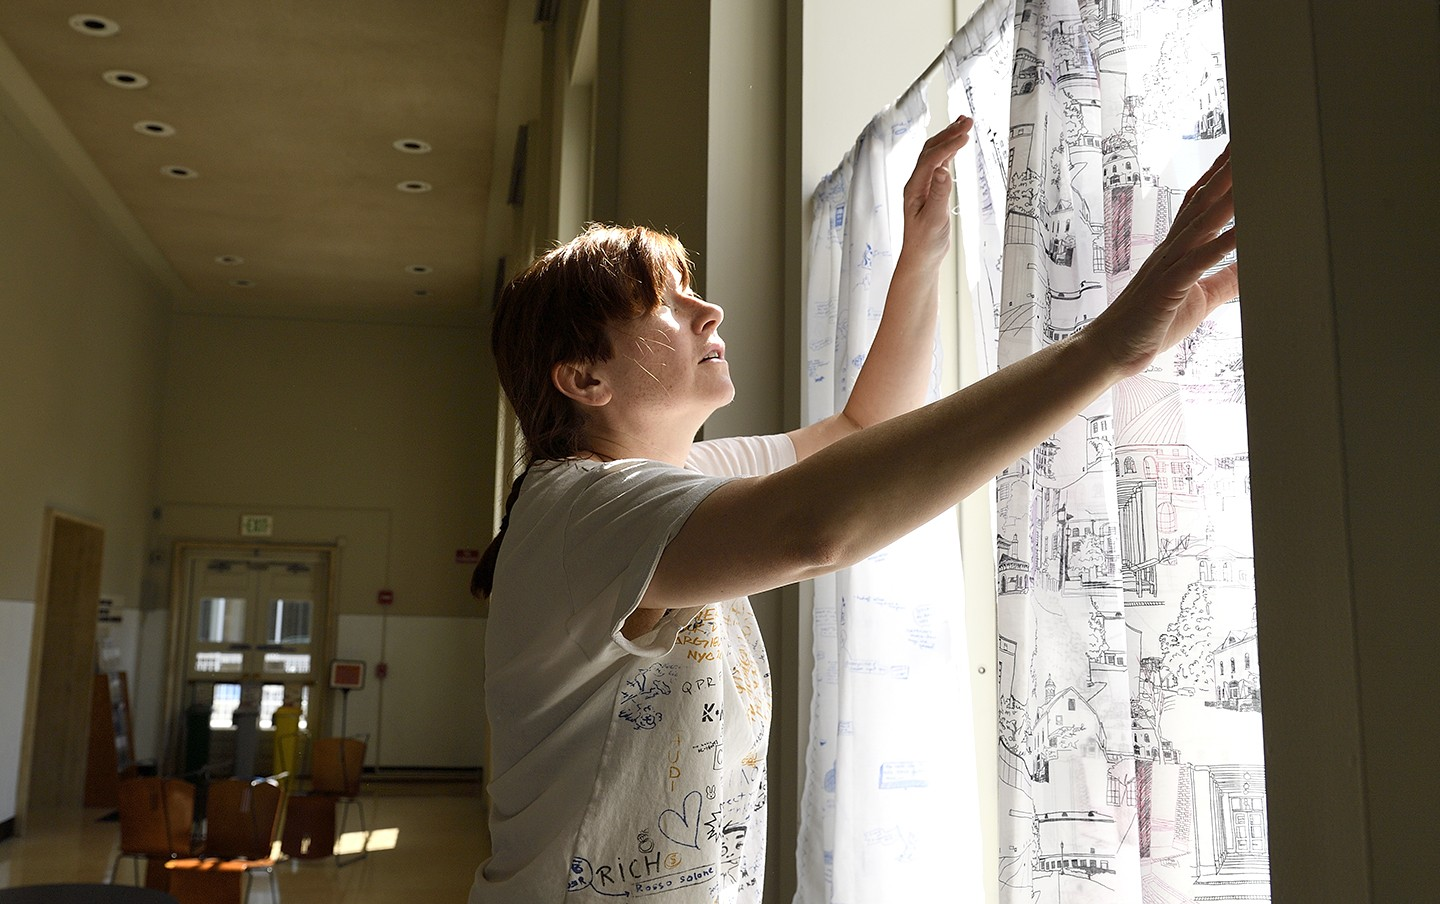 Artist hangs hand-drawn curtains